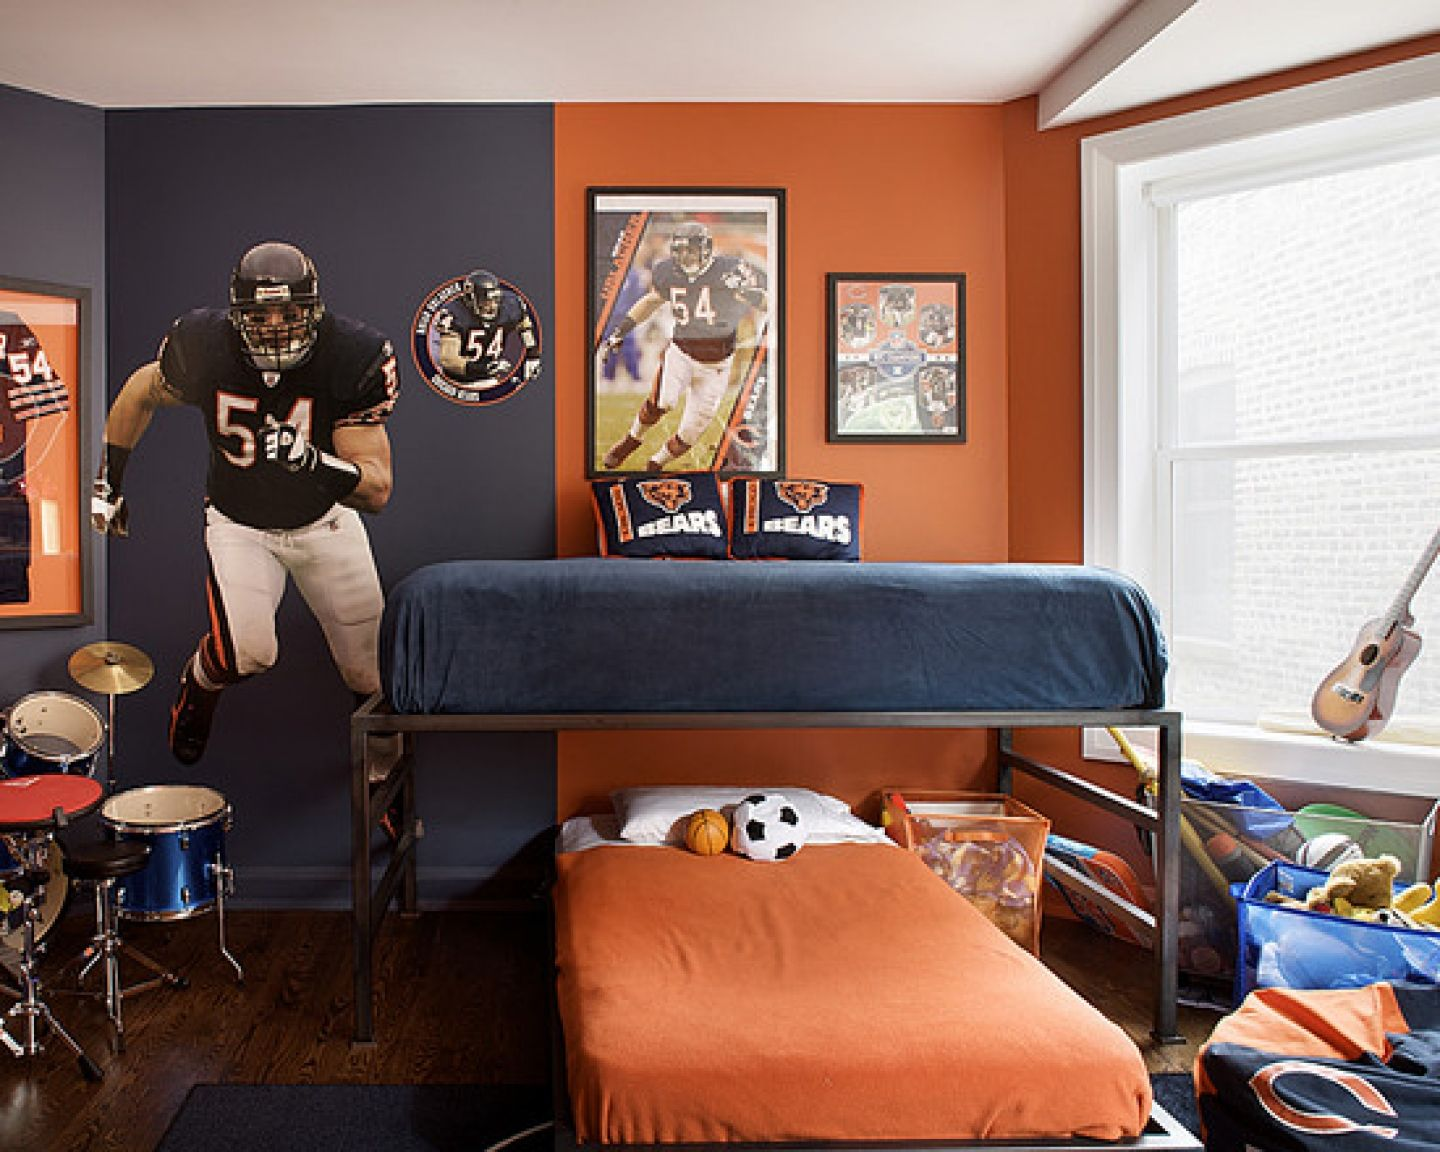 Teenage boys bedroom ideas - Bedroom Fabulous American Football Themed Decorating Idea For Teenage Boys In Shining Accessories